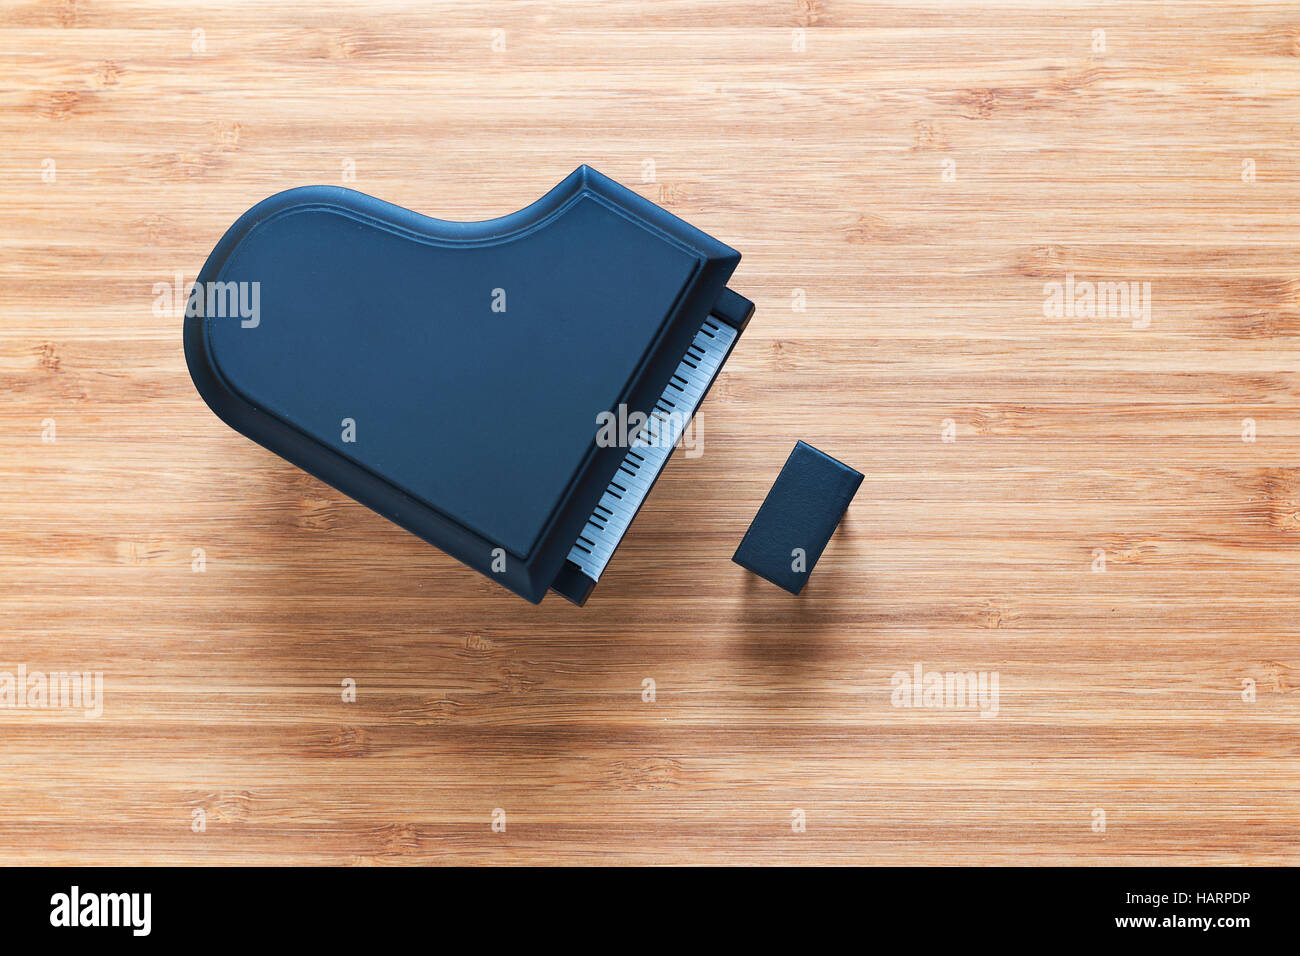 Black toy grand piano on a wooden floor with stool standing near it. Top view. Music concept. Stock Photo